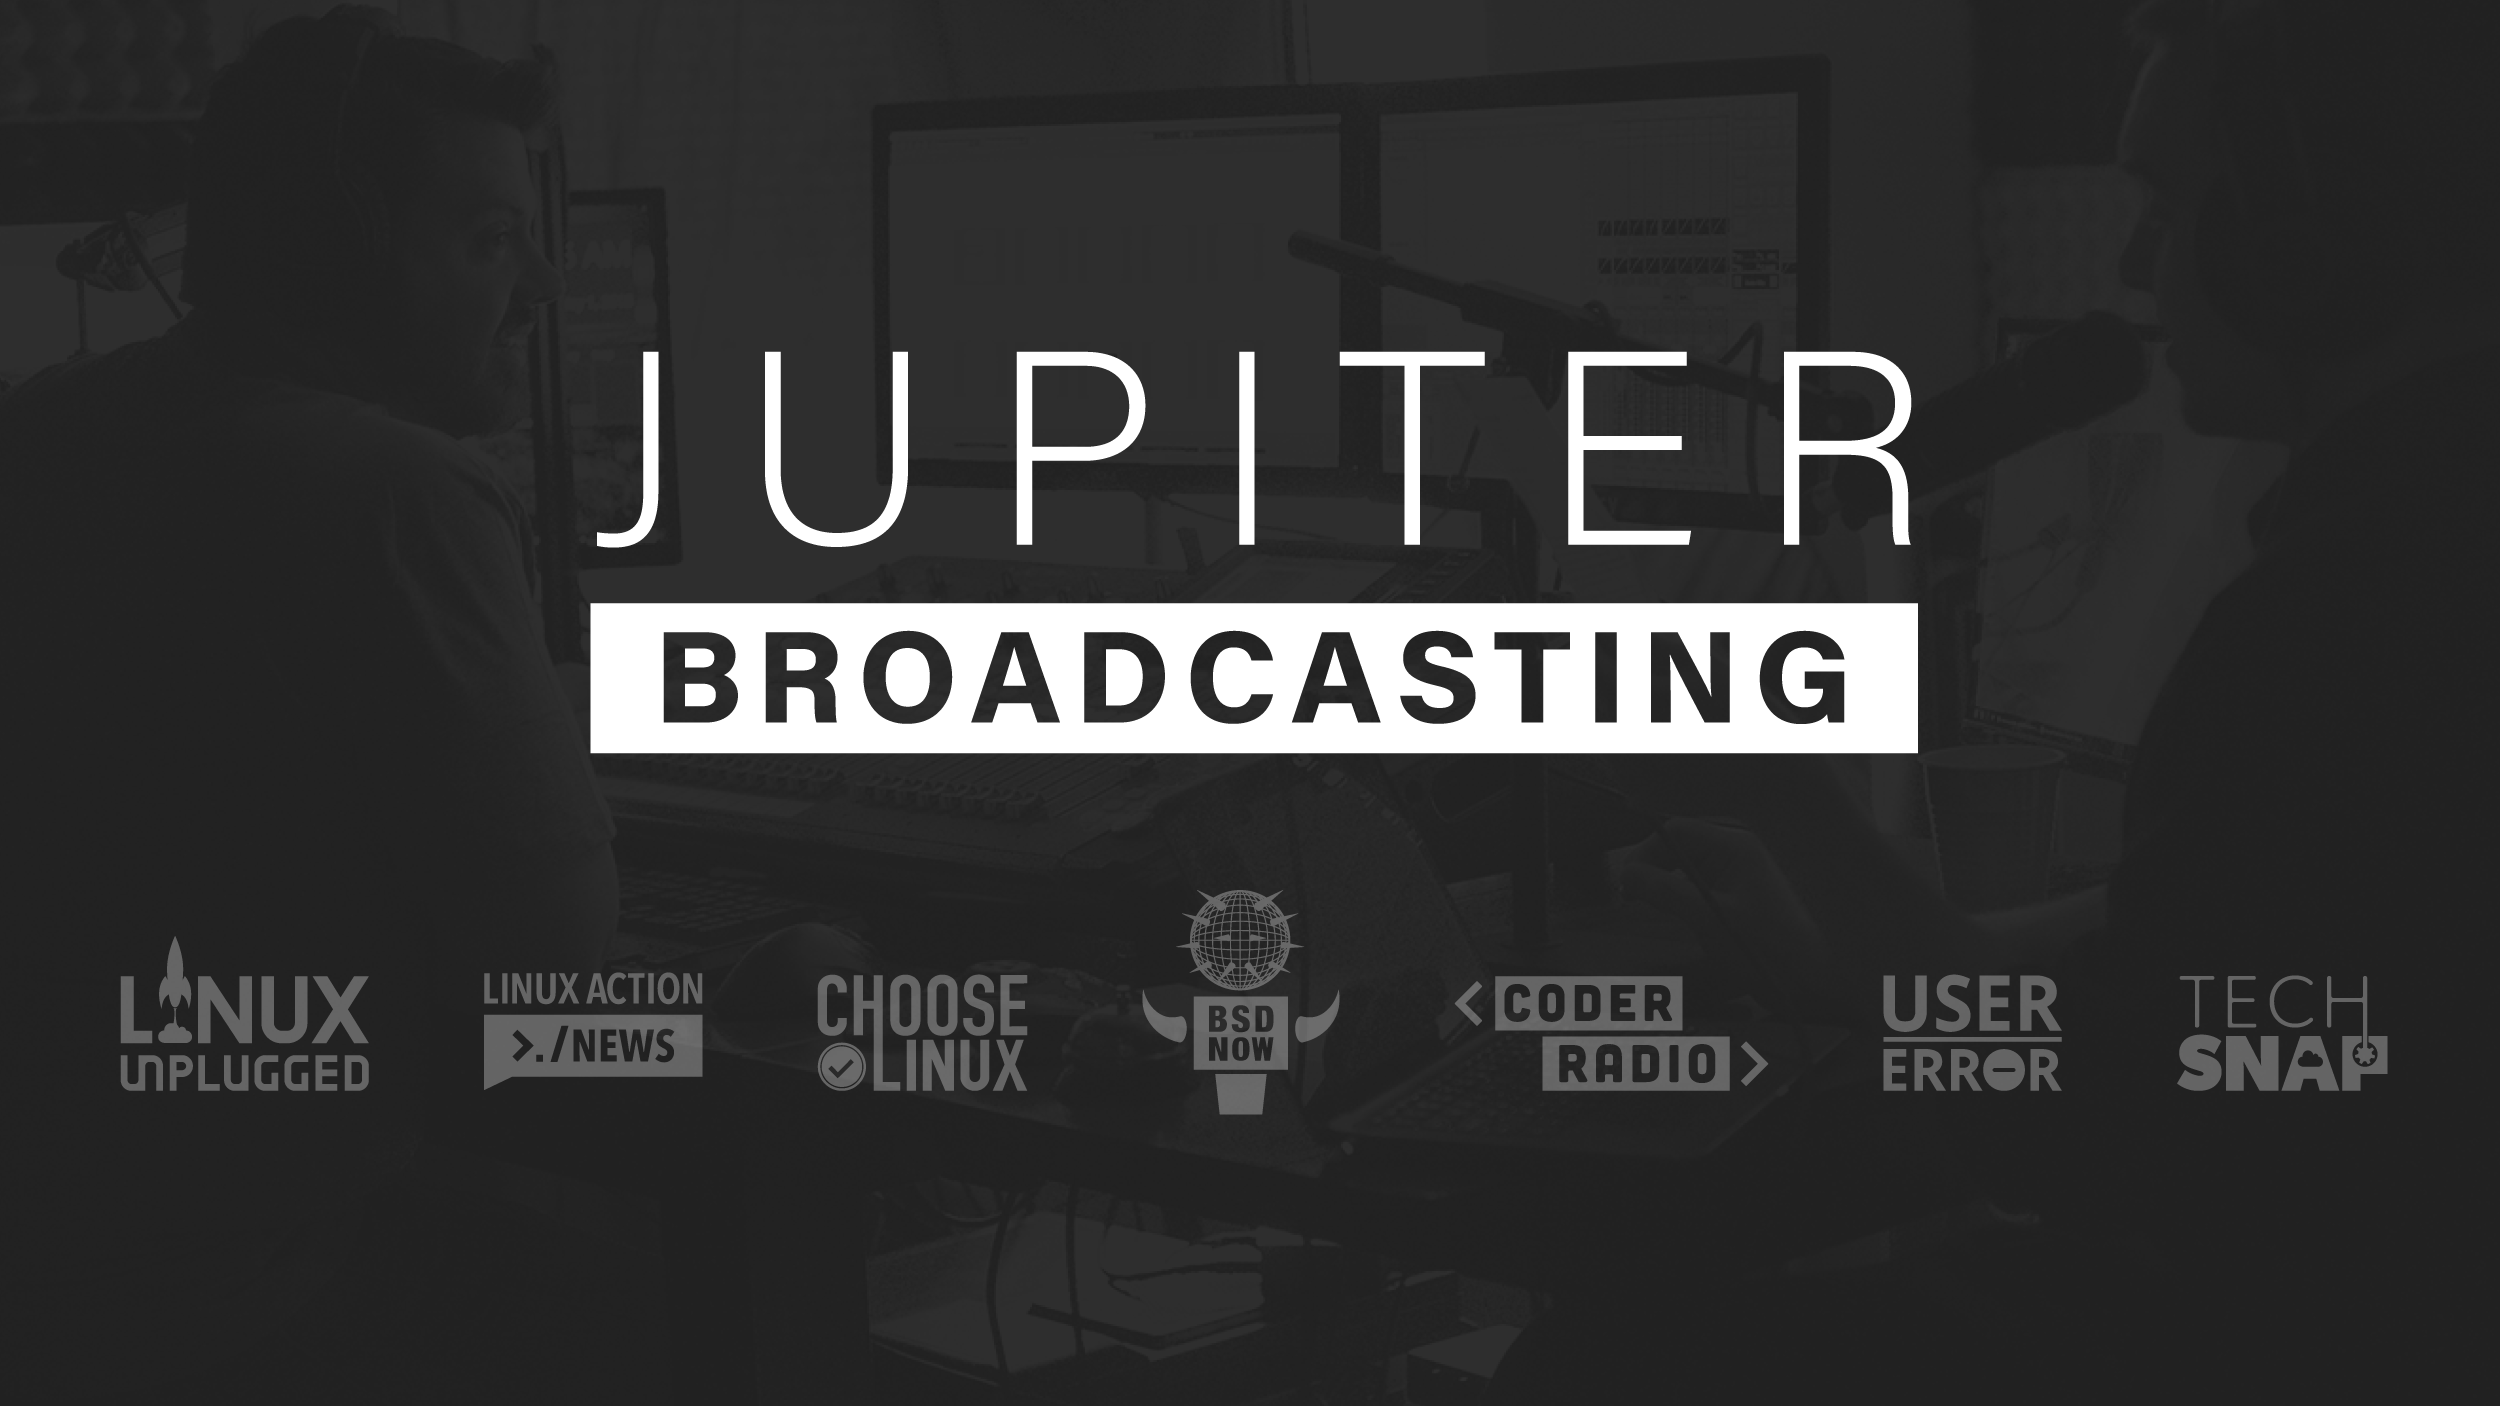 Jupiter Broadcasting Meetup